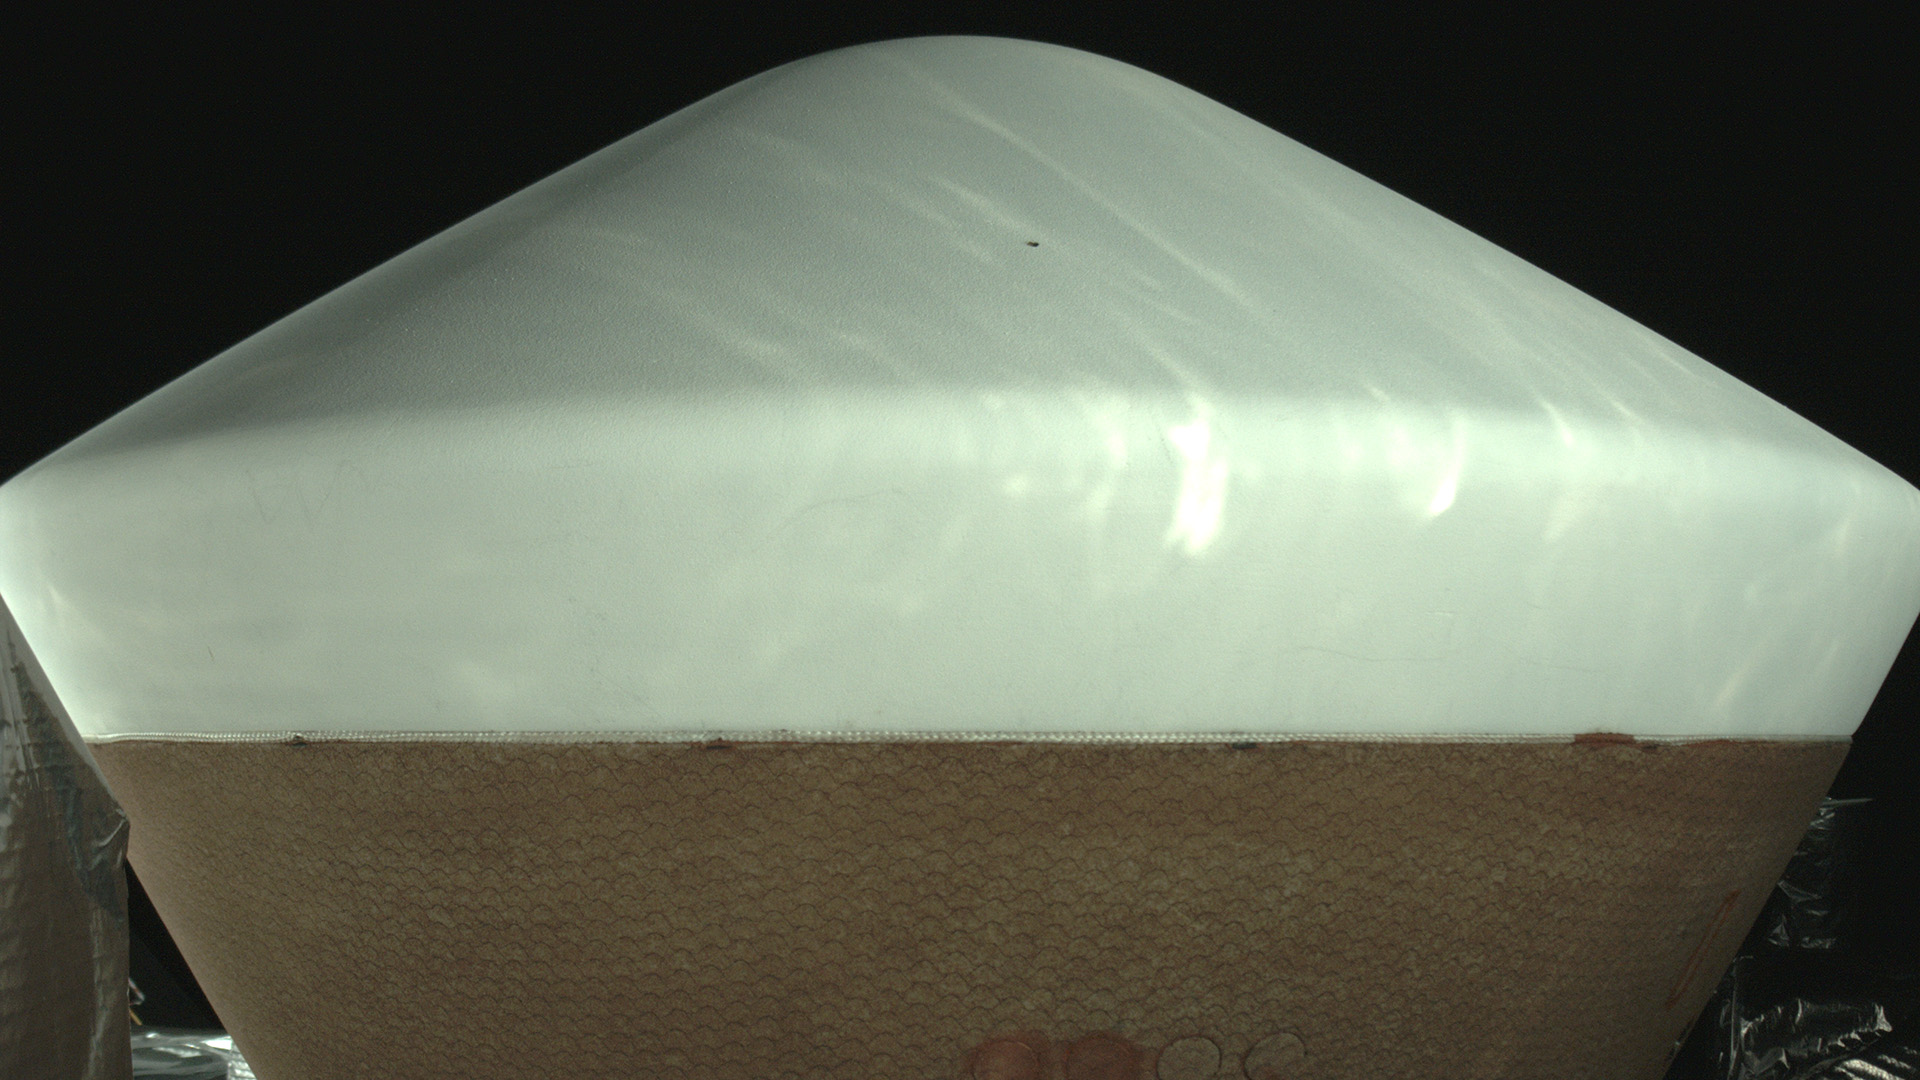 A poppy-seed-sized dent (the black spot near the top) was discovered on the heat shield of the OSIRIS-REx sample-return capsule in an image taken by an on-board camera March 2, 2017. The damage won't affect the capsule's performance.